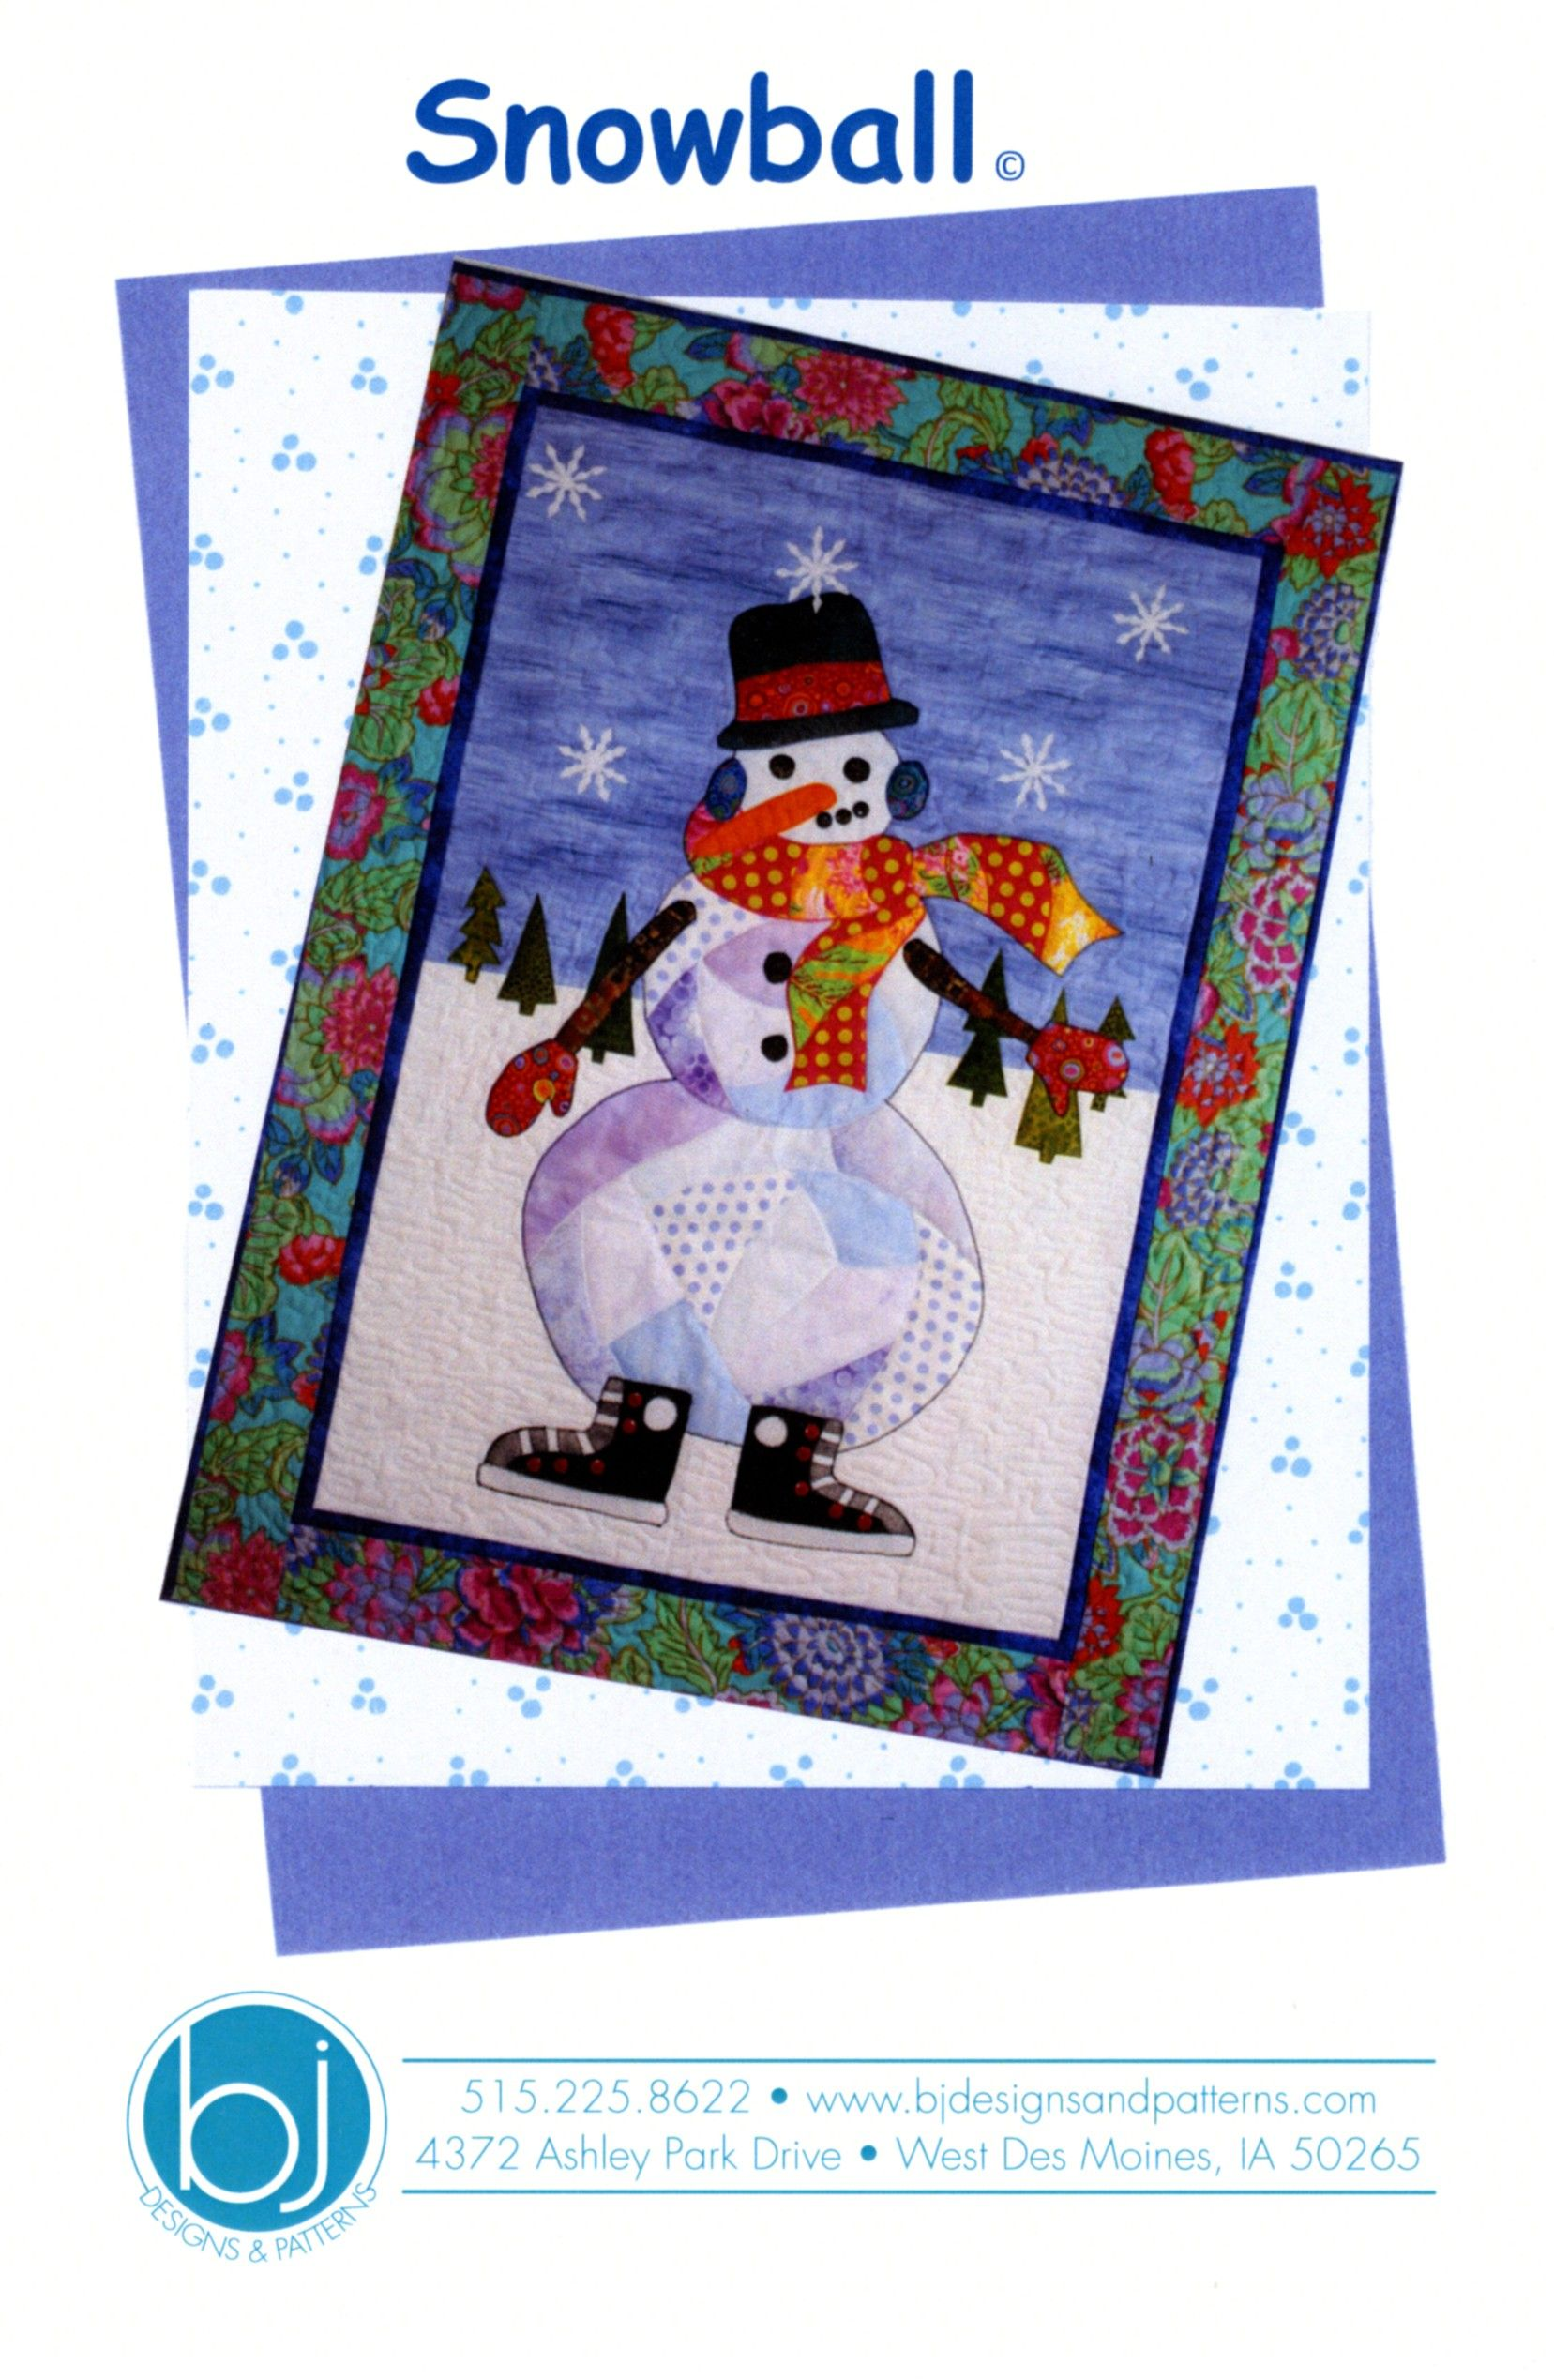 Snowball By Jones, Barbara J.  - 30in x 41in. Includes full size Applique patterns